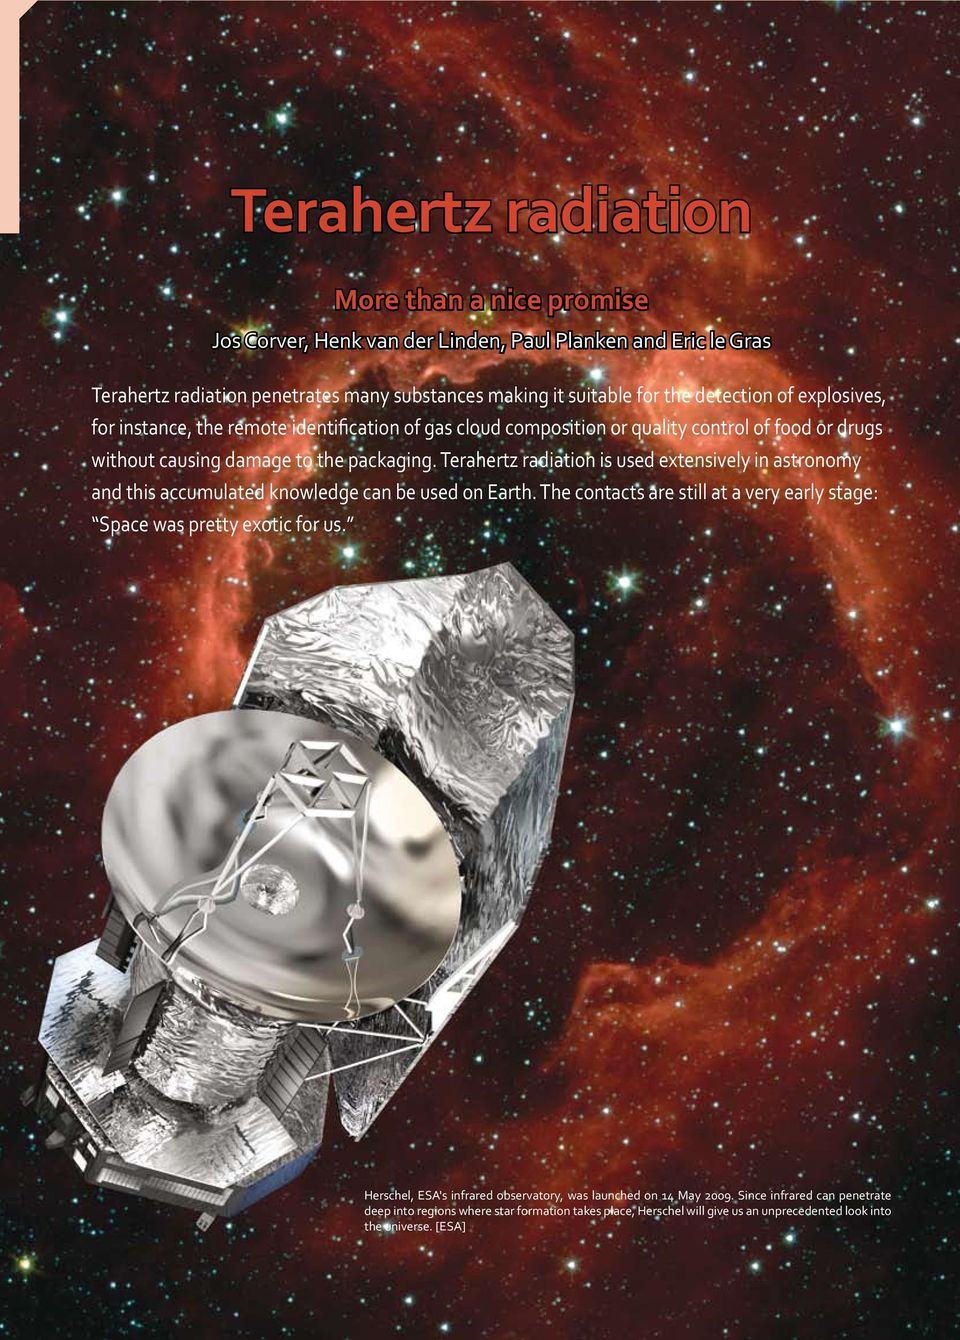 Terahertz radiation is used extensively in astronomy and this accumulated knowledge can be used on Earth. The contacts are still at a very early stage: Space was pretty exotic for us.